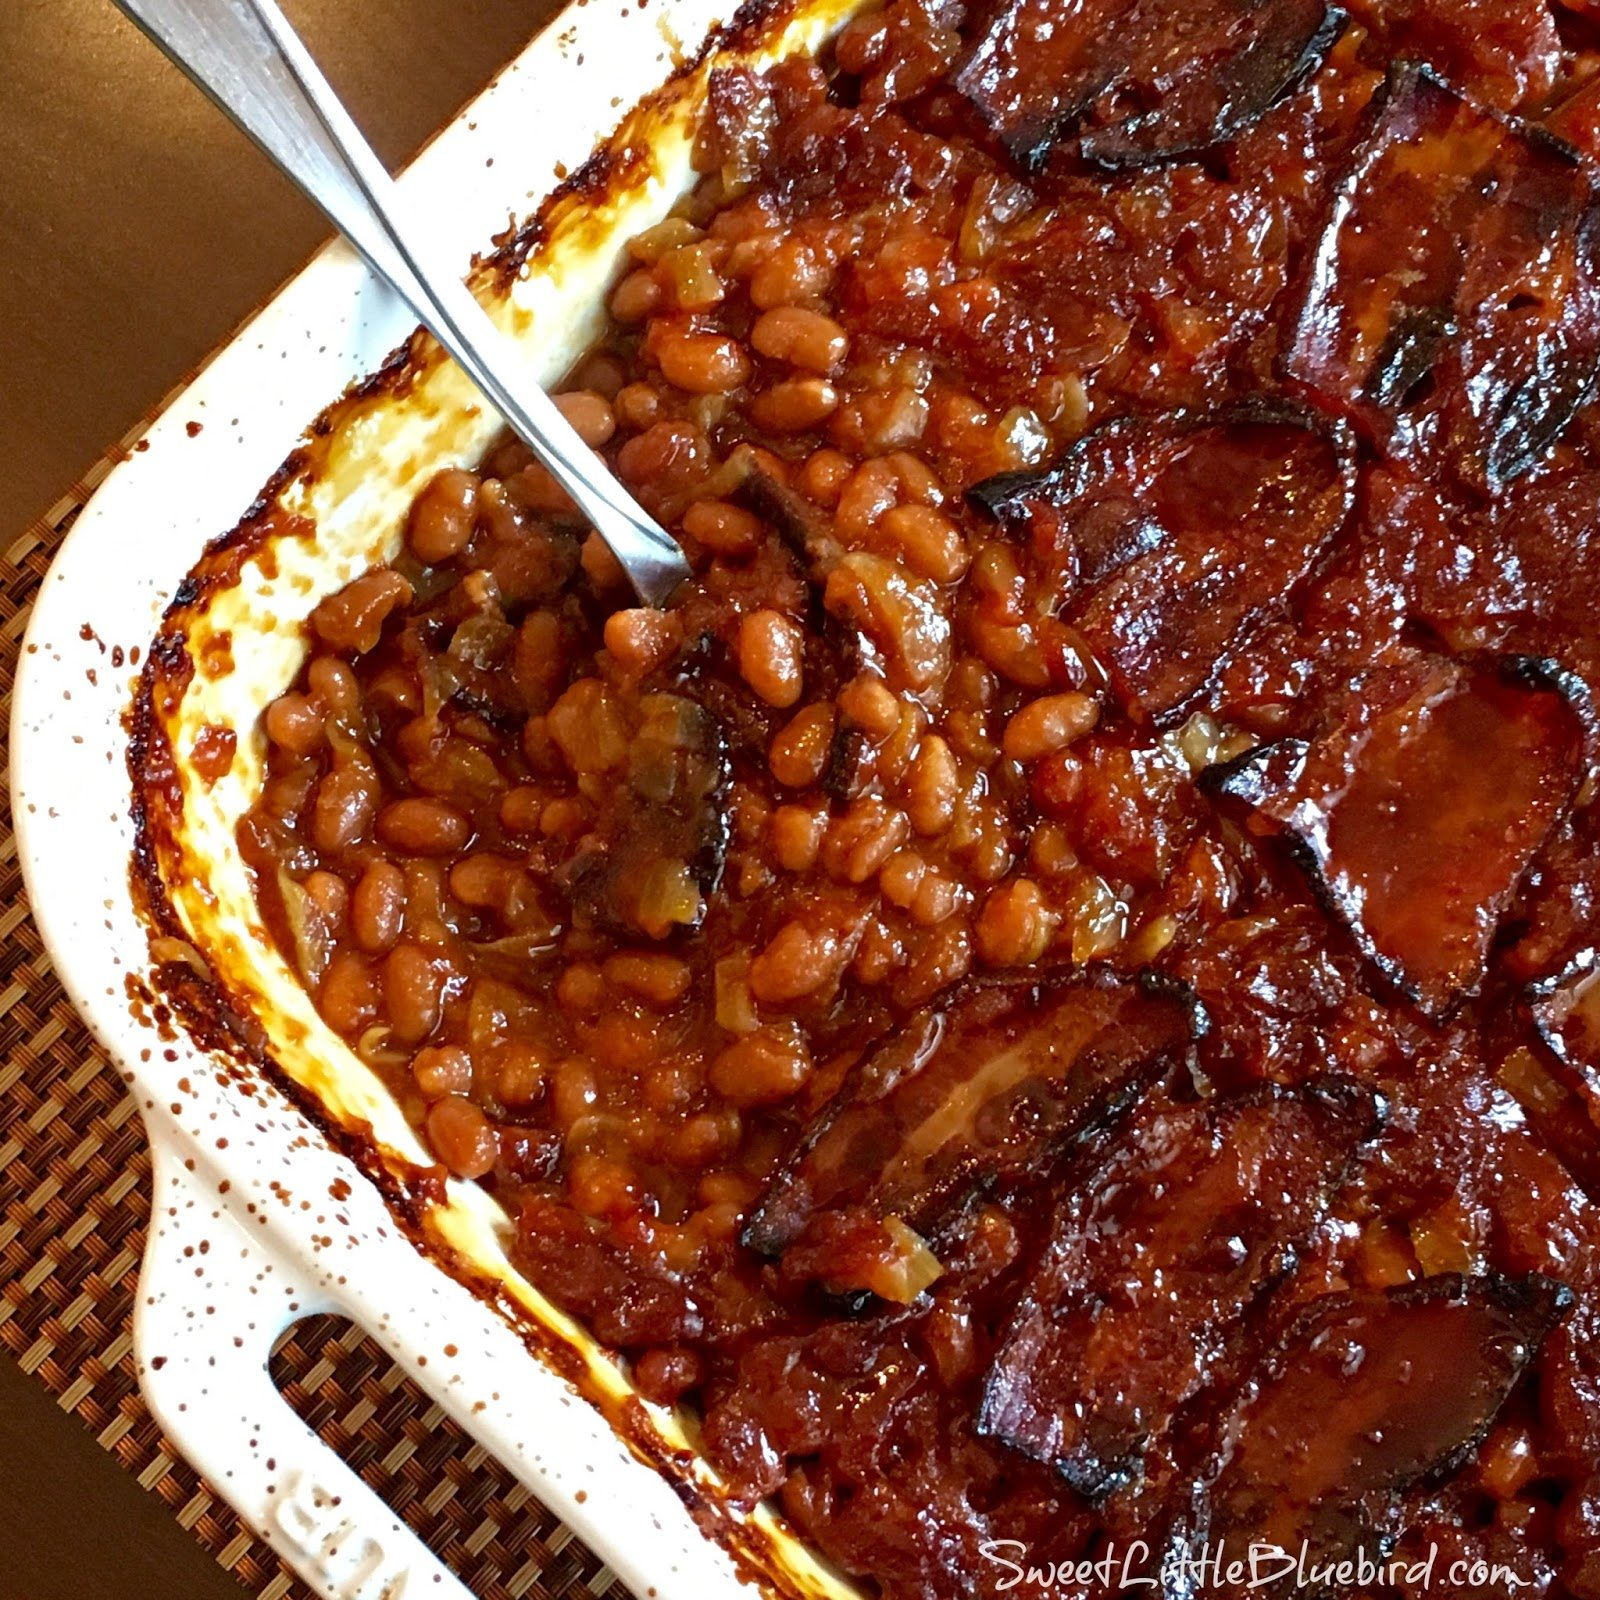 How to cook baked beans